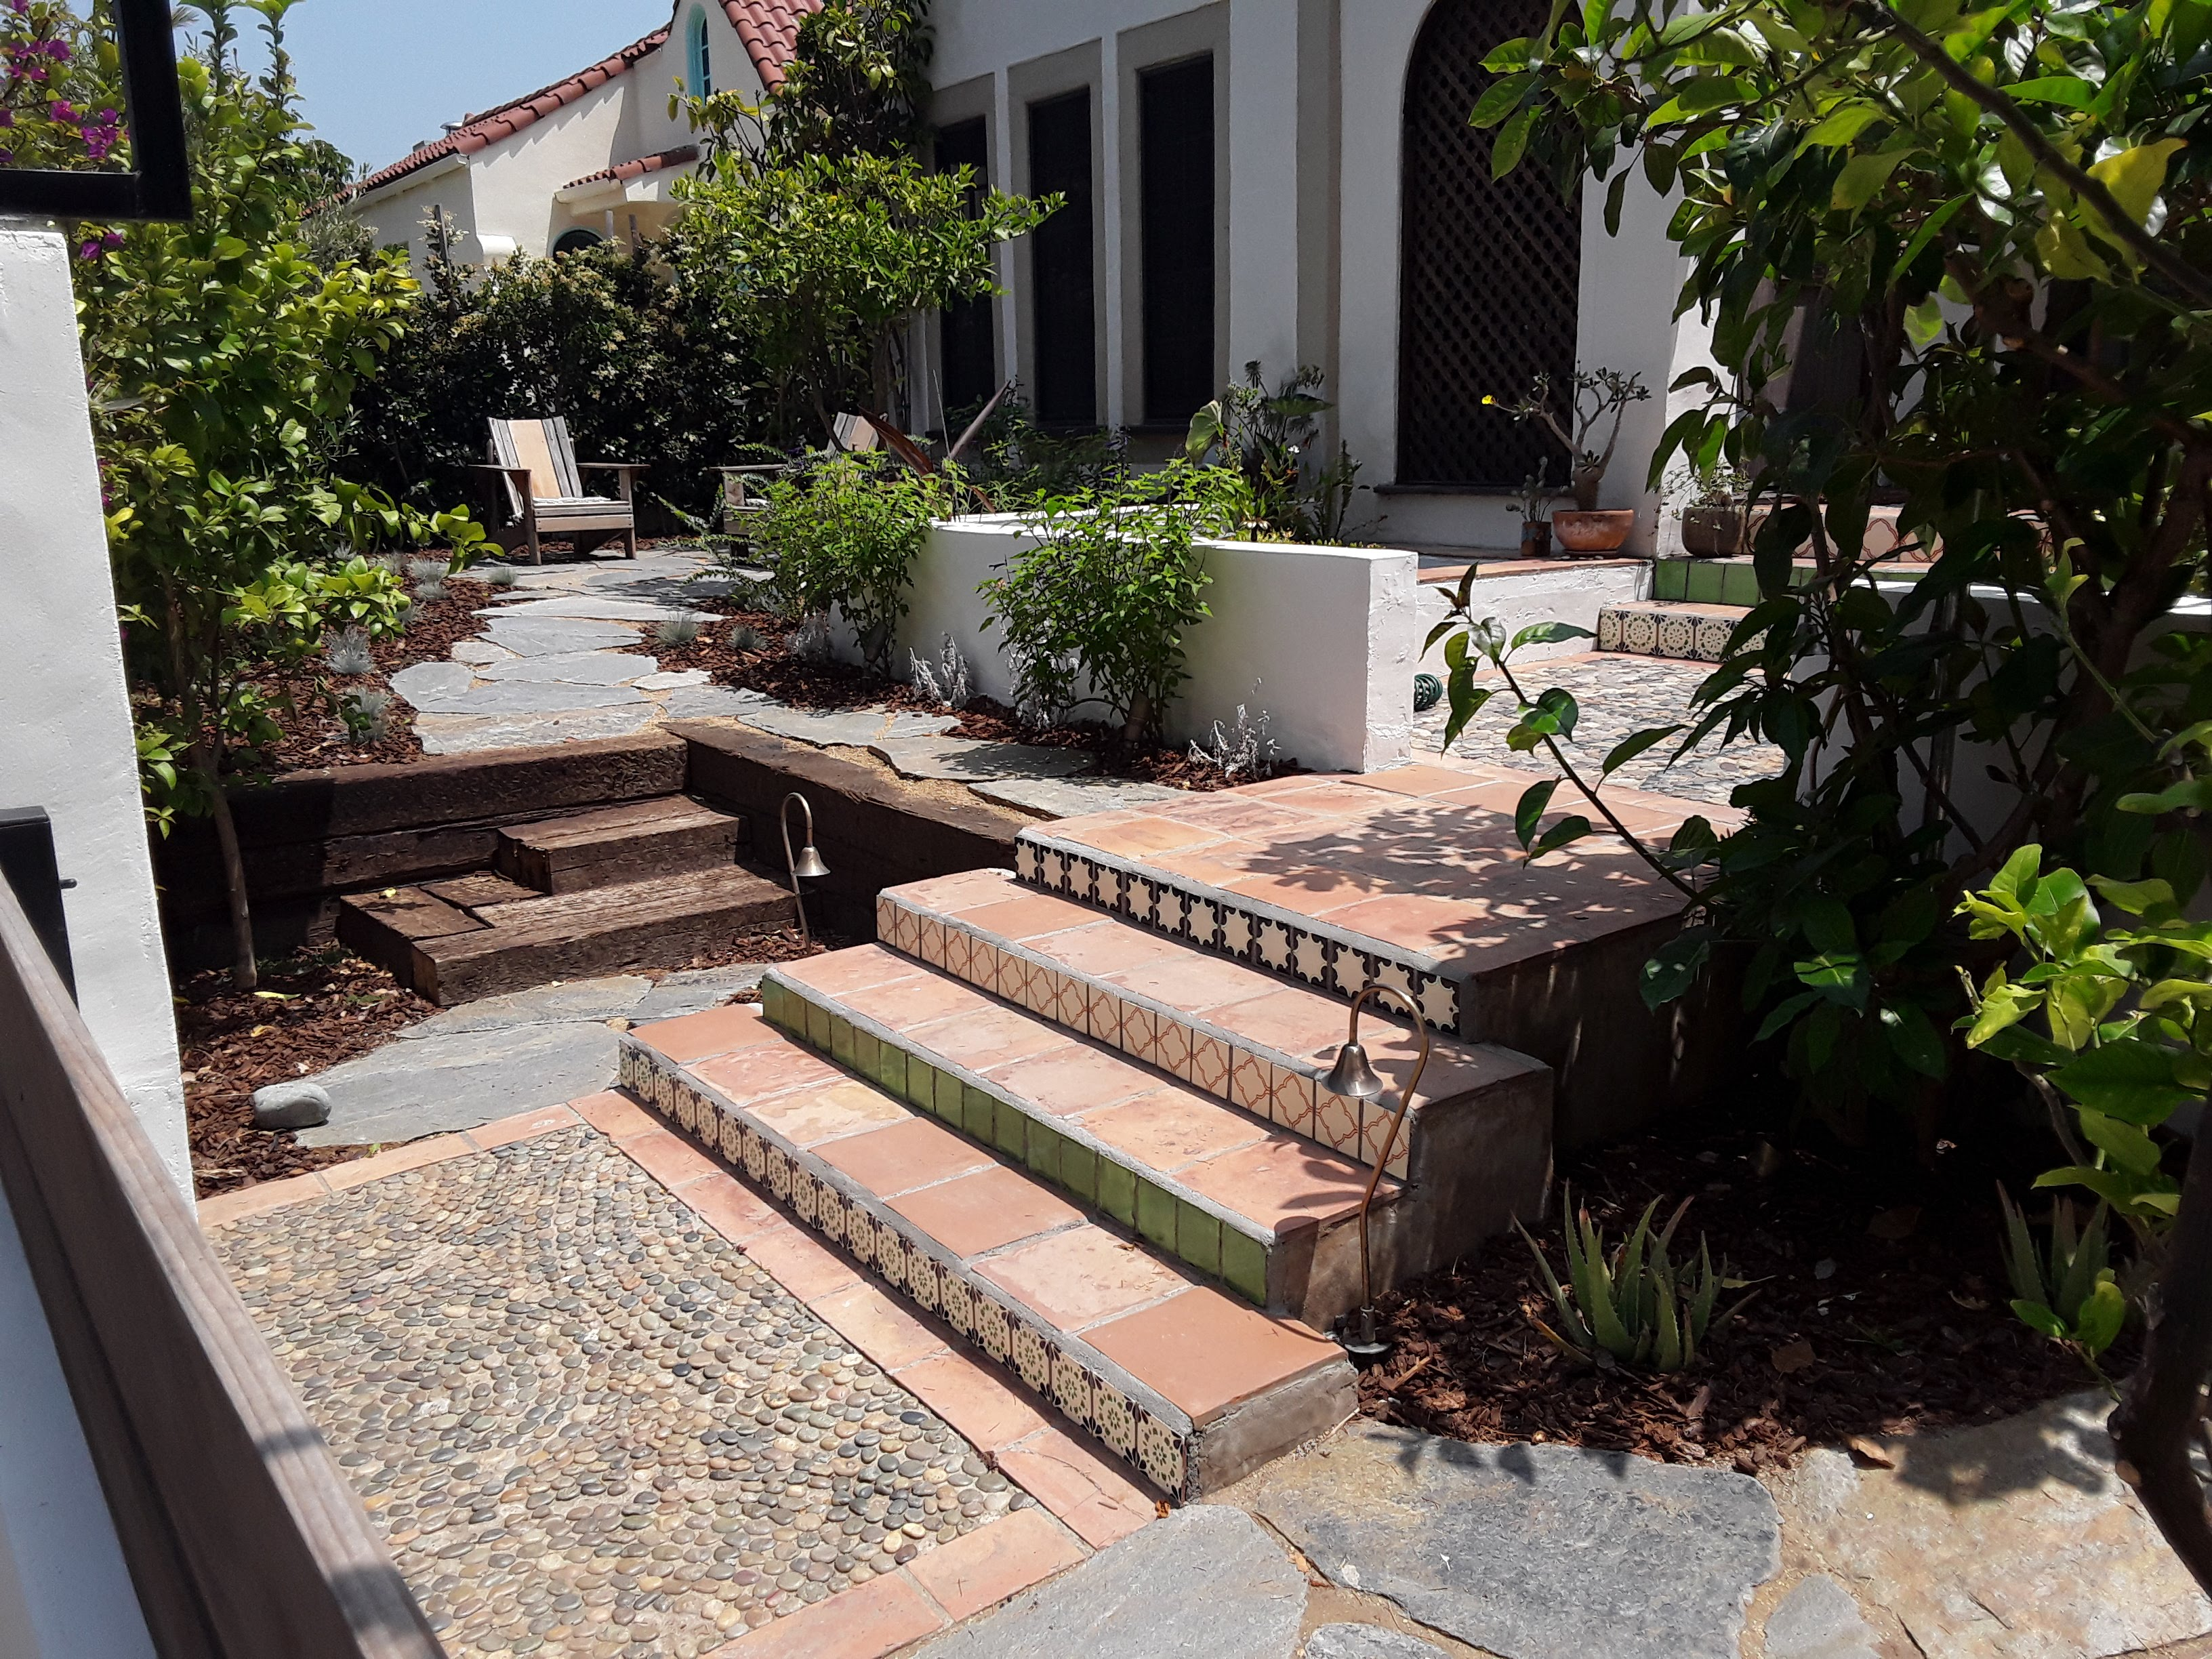 image: Landscape Design Service Portfolio of Projects